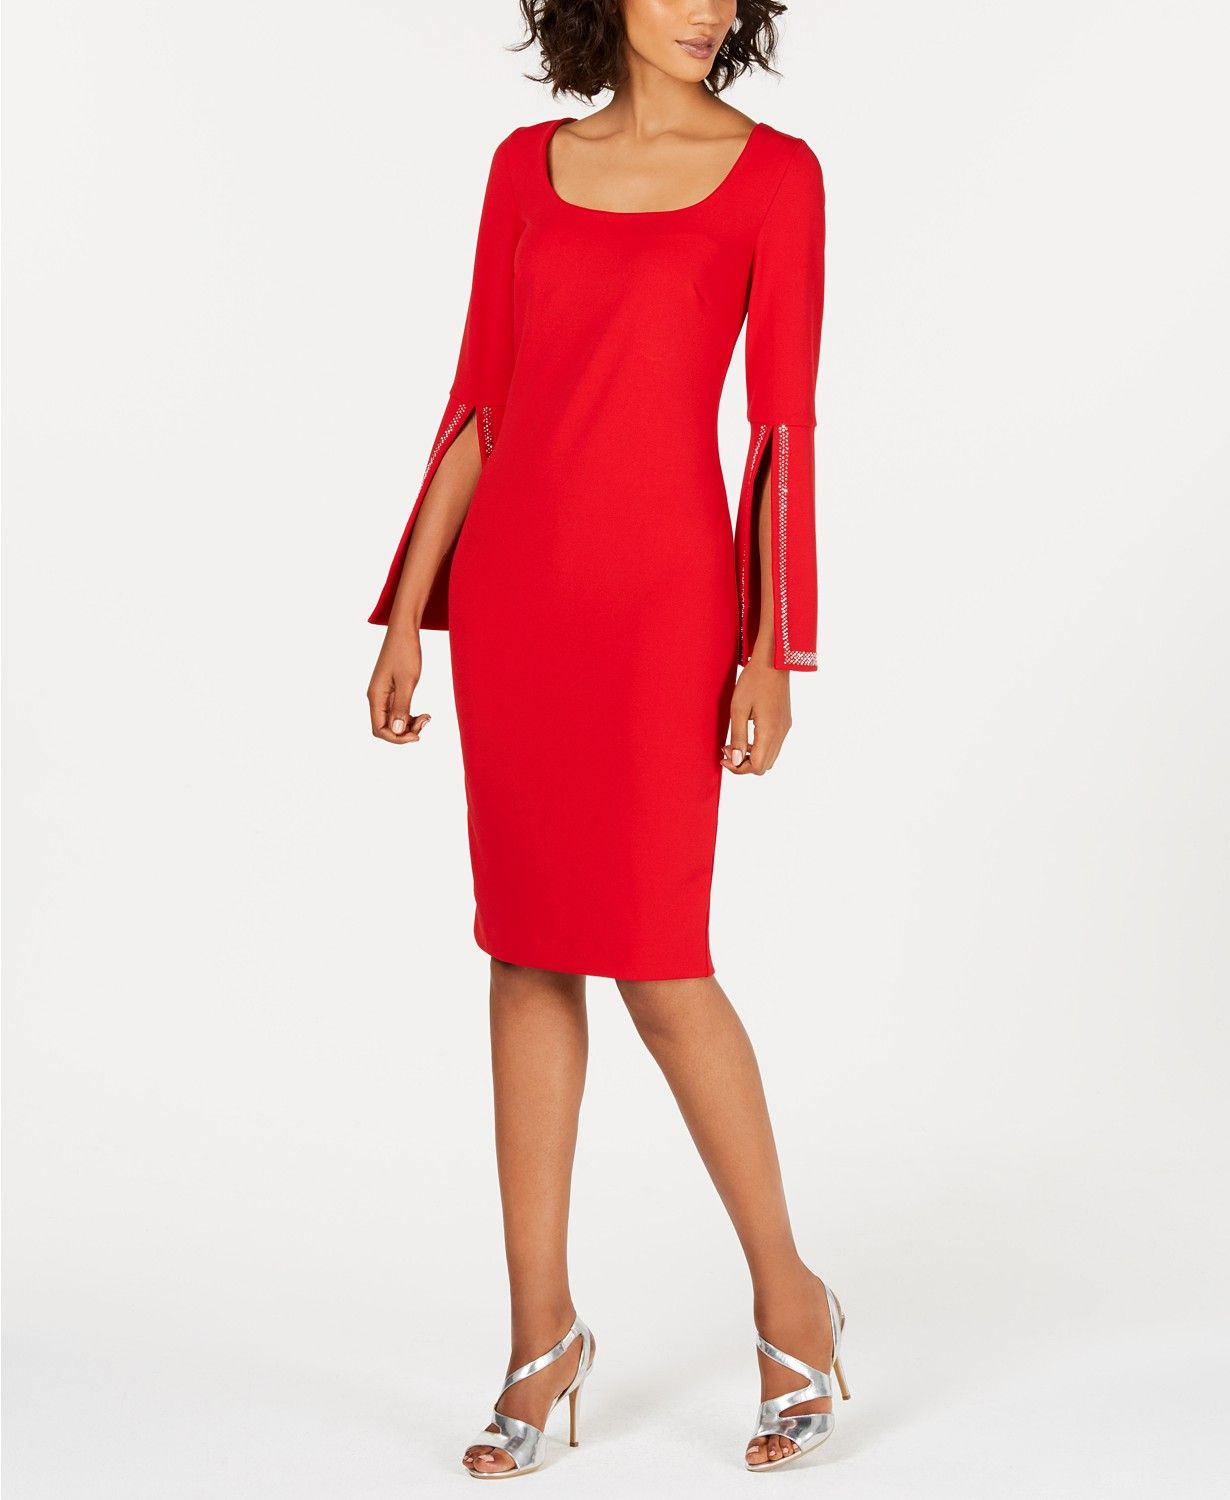 Calvin Klein Blingy Bell Sleeve Sheath Dress Dresses Women Macy S Red Bell Sleeve Dress Bell Sleeve Dress Outfit Clothes For Women [ 1500 x 1230 Pixel ]